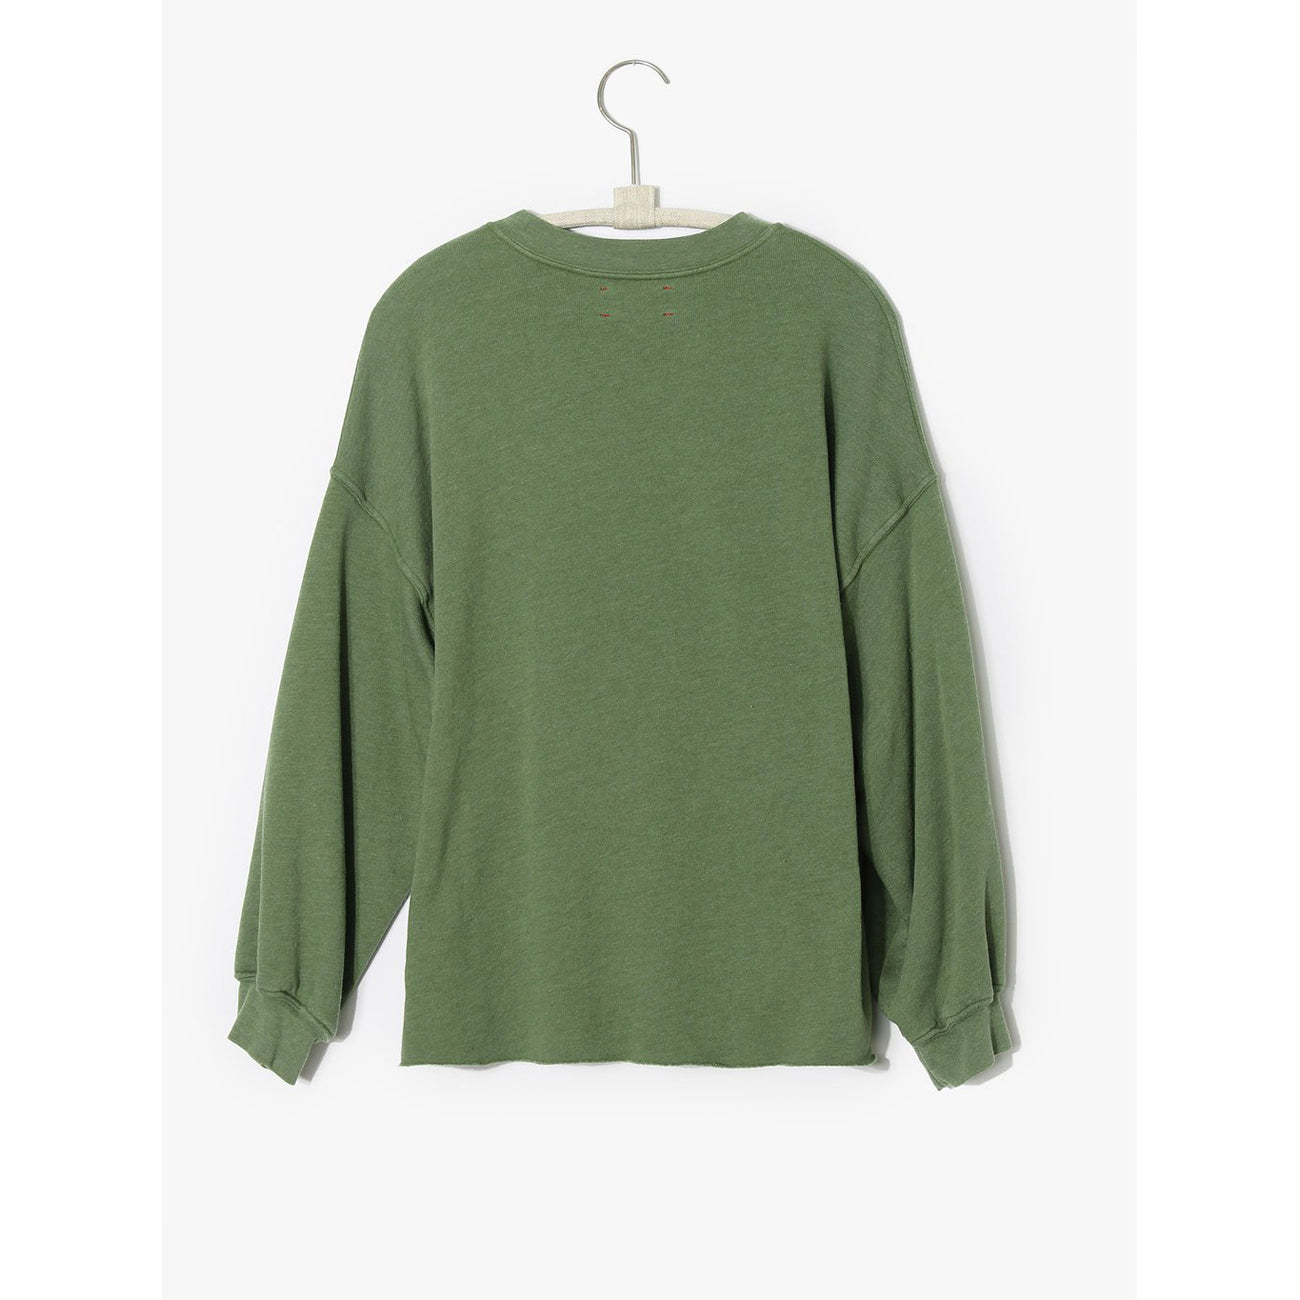 honor sweatshirt in palm shade